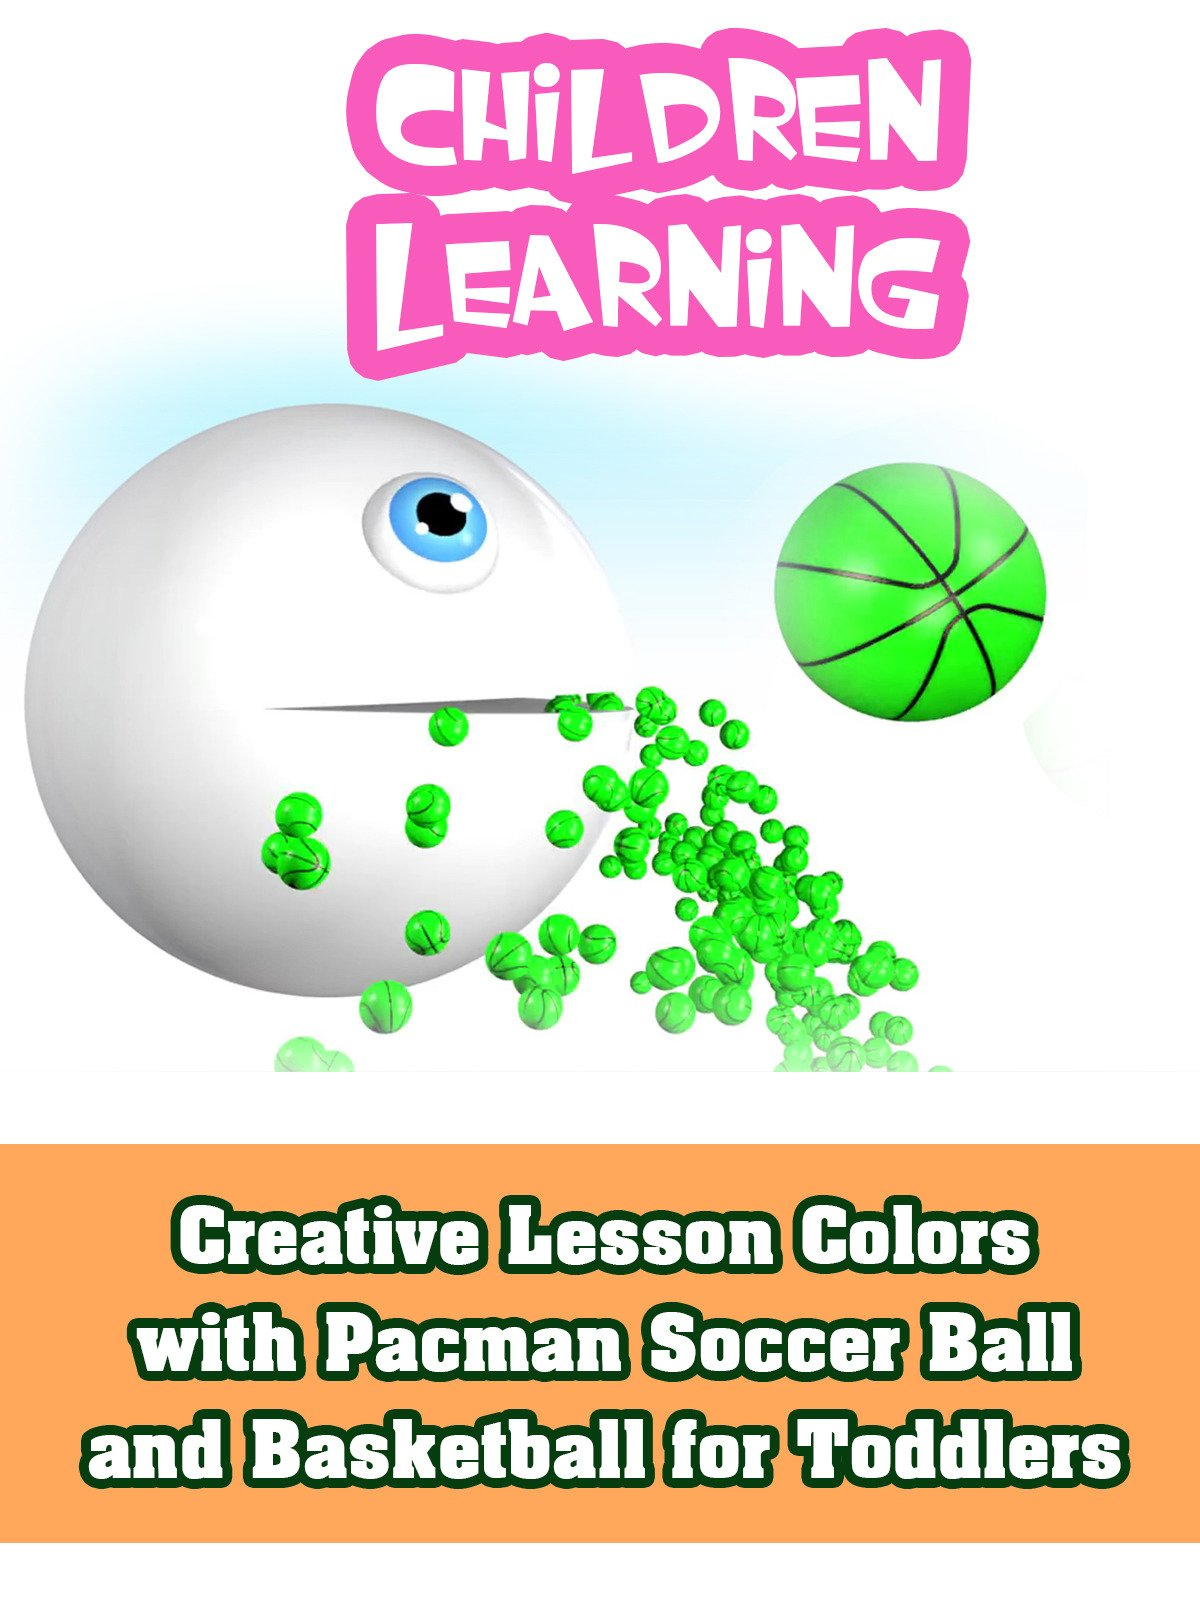 Creative Lesson Colors with Pacman Soccer Ball and Basketball for Toddlers